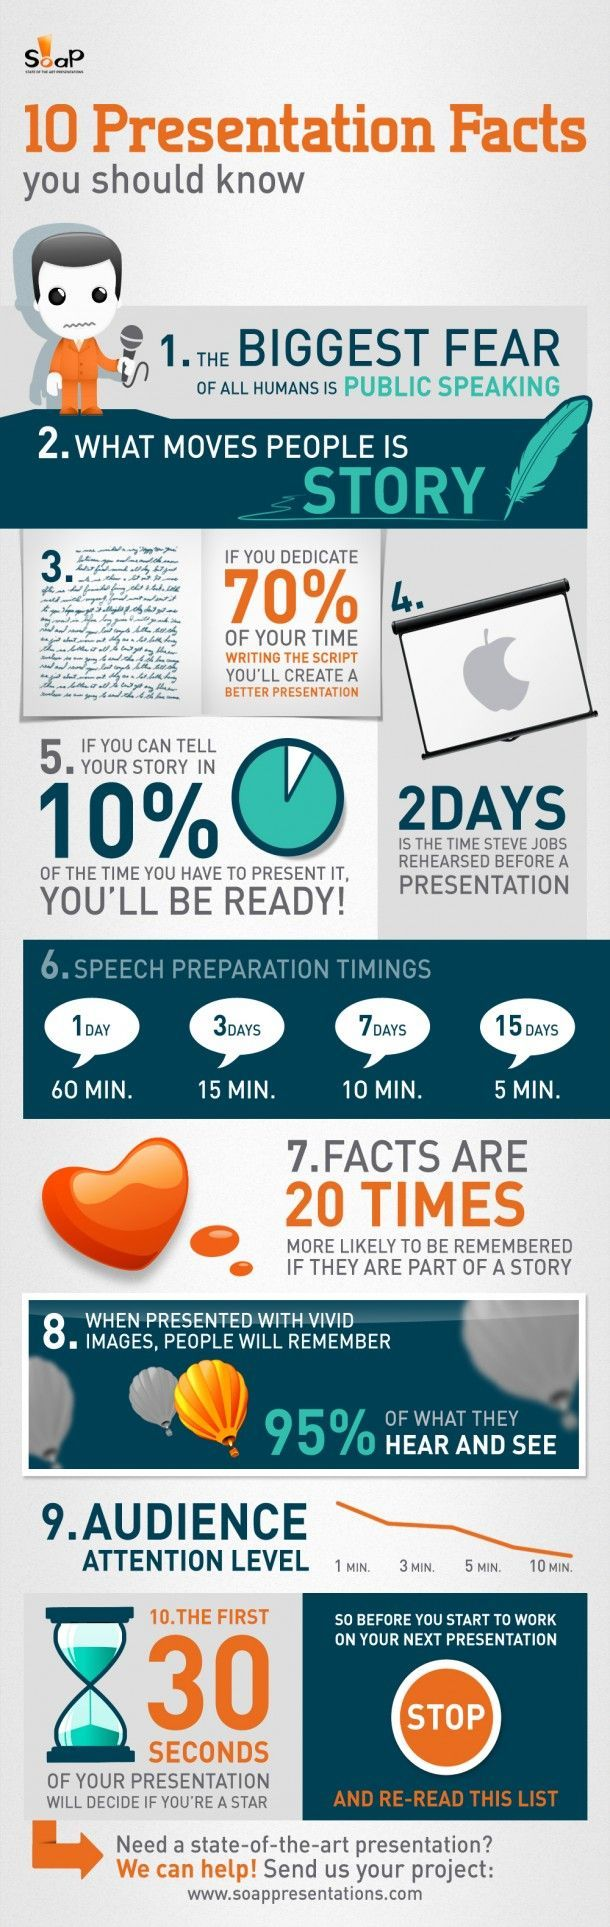 10 Presentation Facts That Make Public Speaking (a Little) Less ScaryDonna Peeples